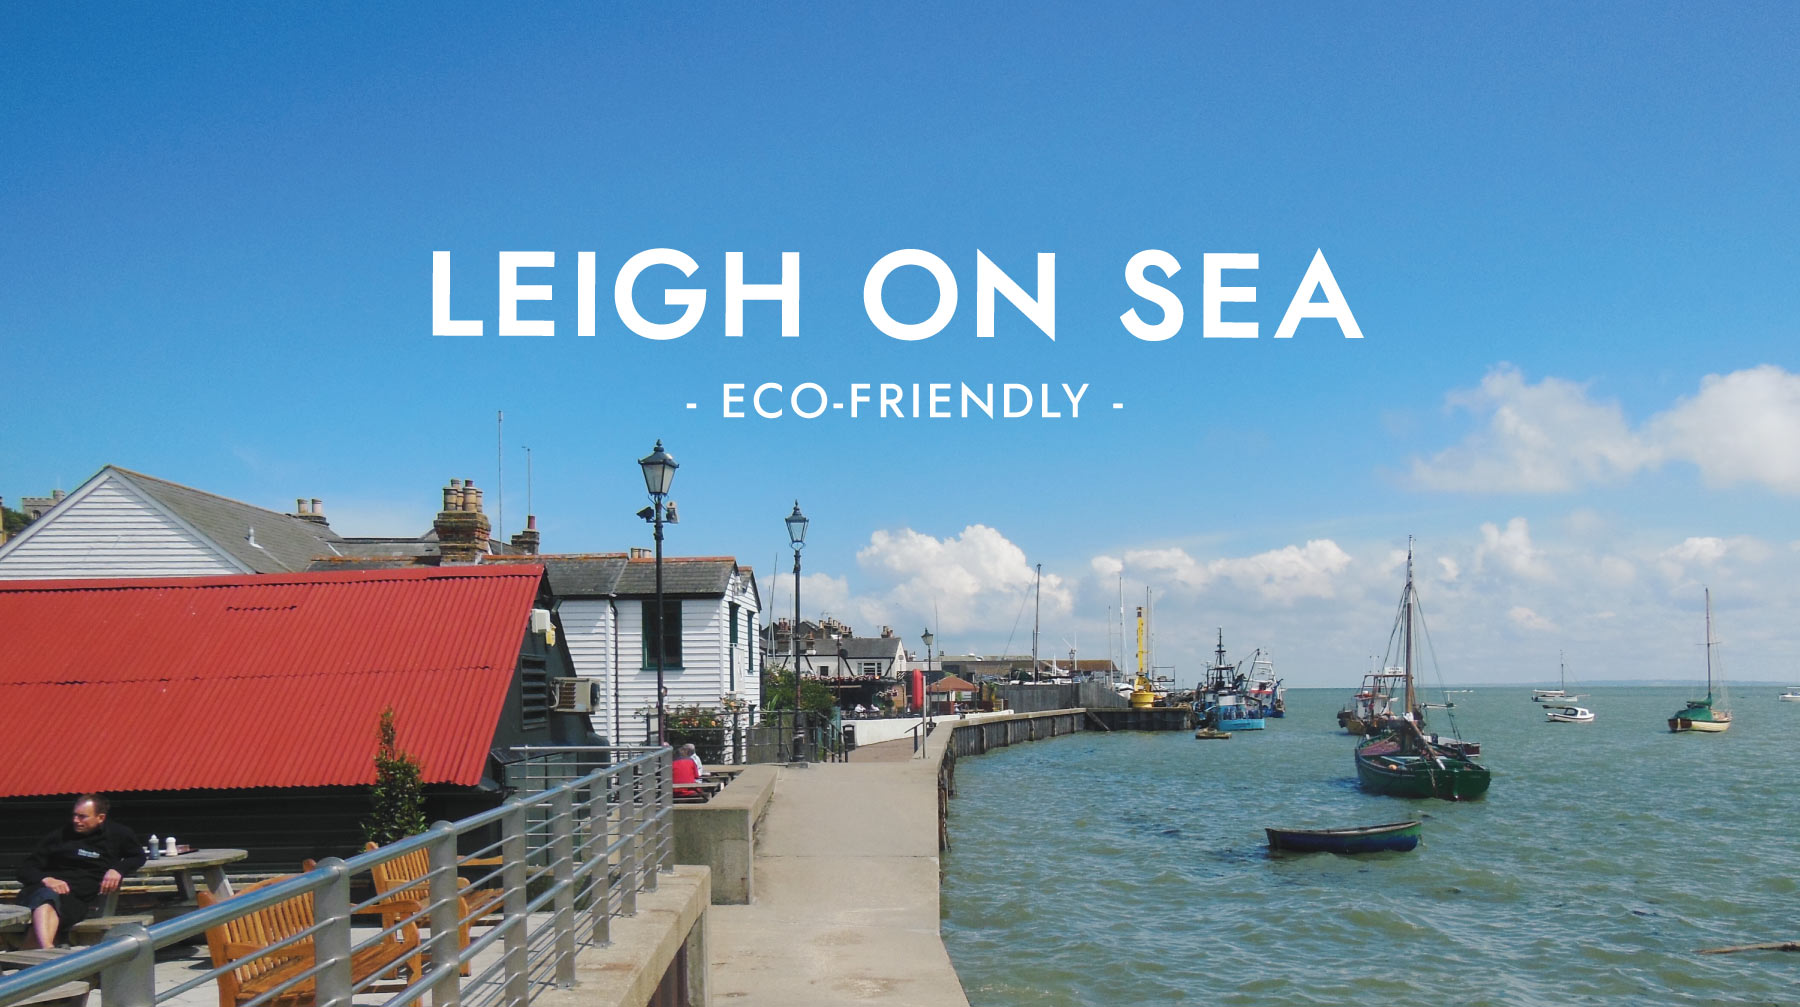 LEIGH-ON-SEA-COVER_corregido